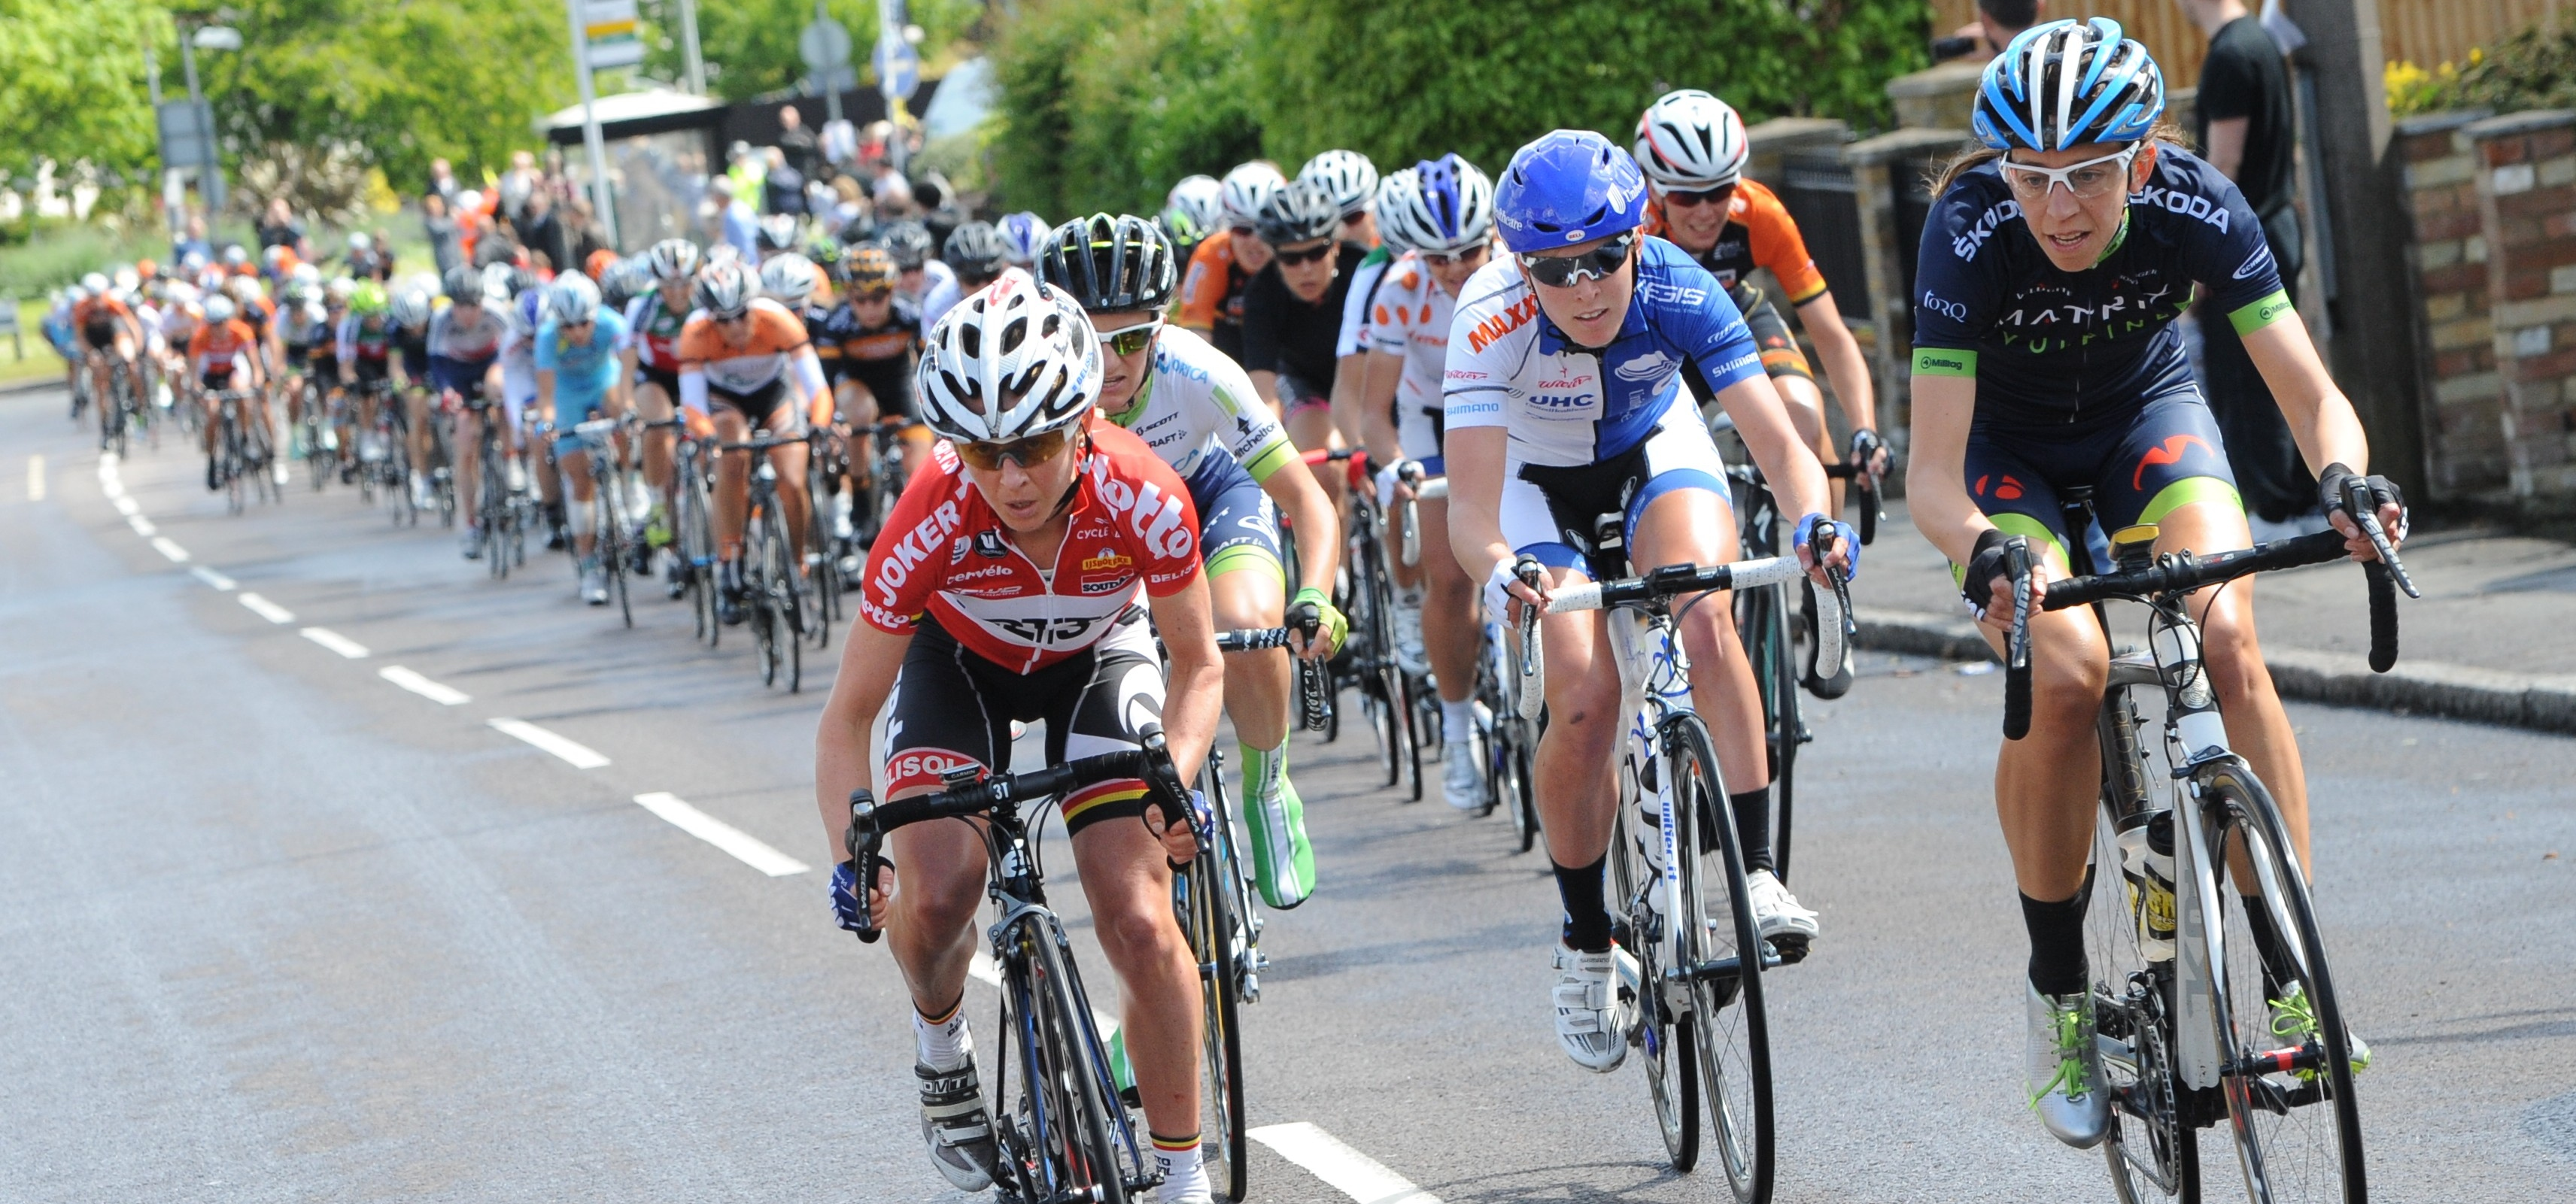 2015 women's race dates for your diary